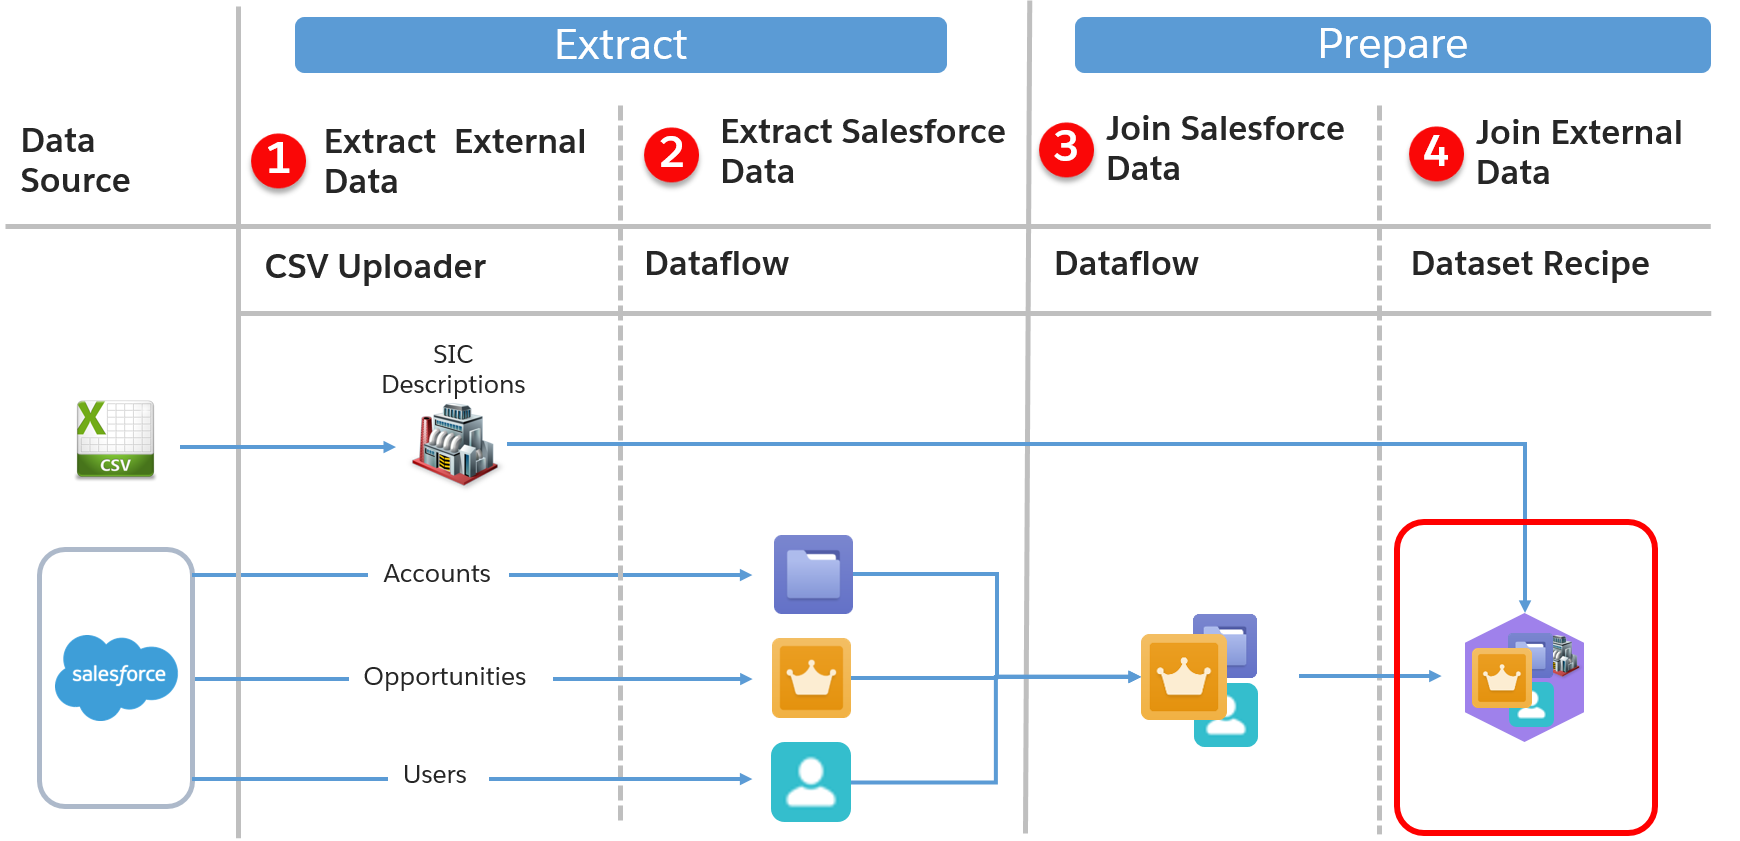 Data journey map with the Join External Data data recipe step highlighted